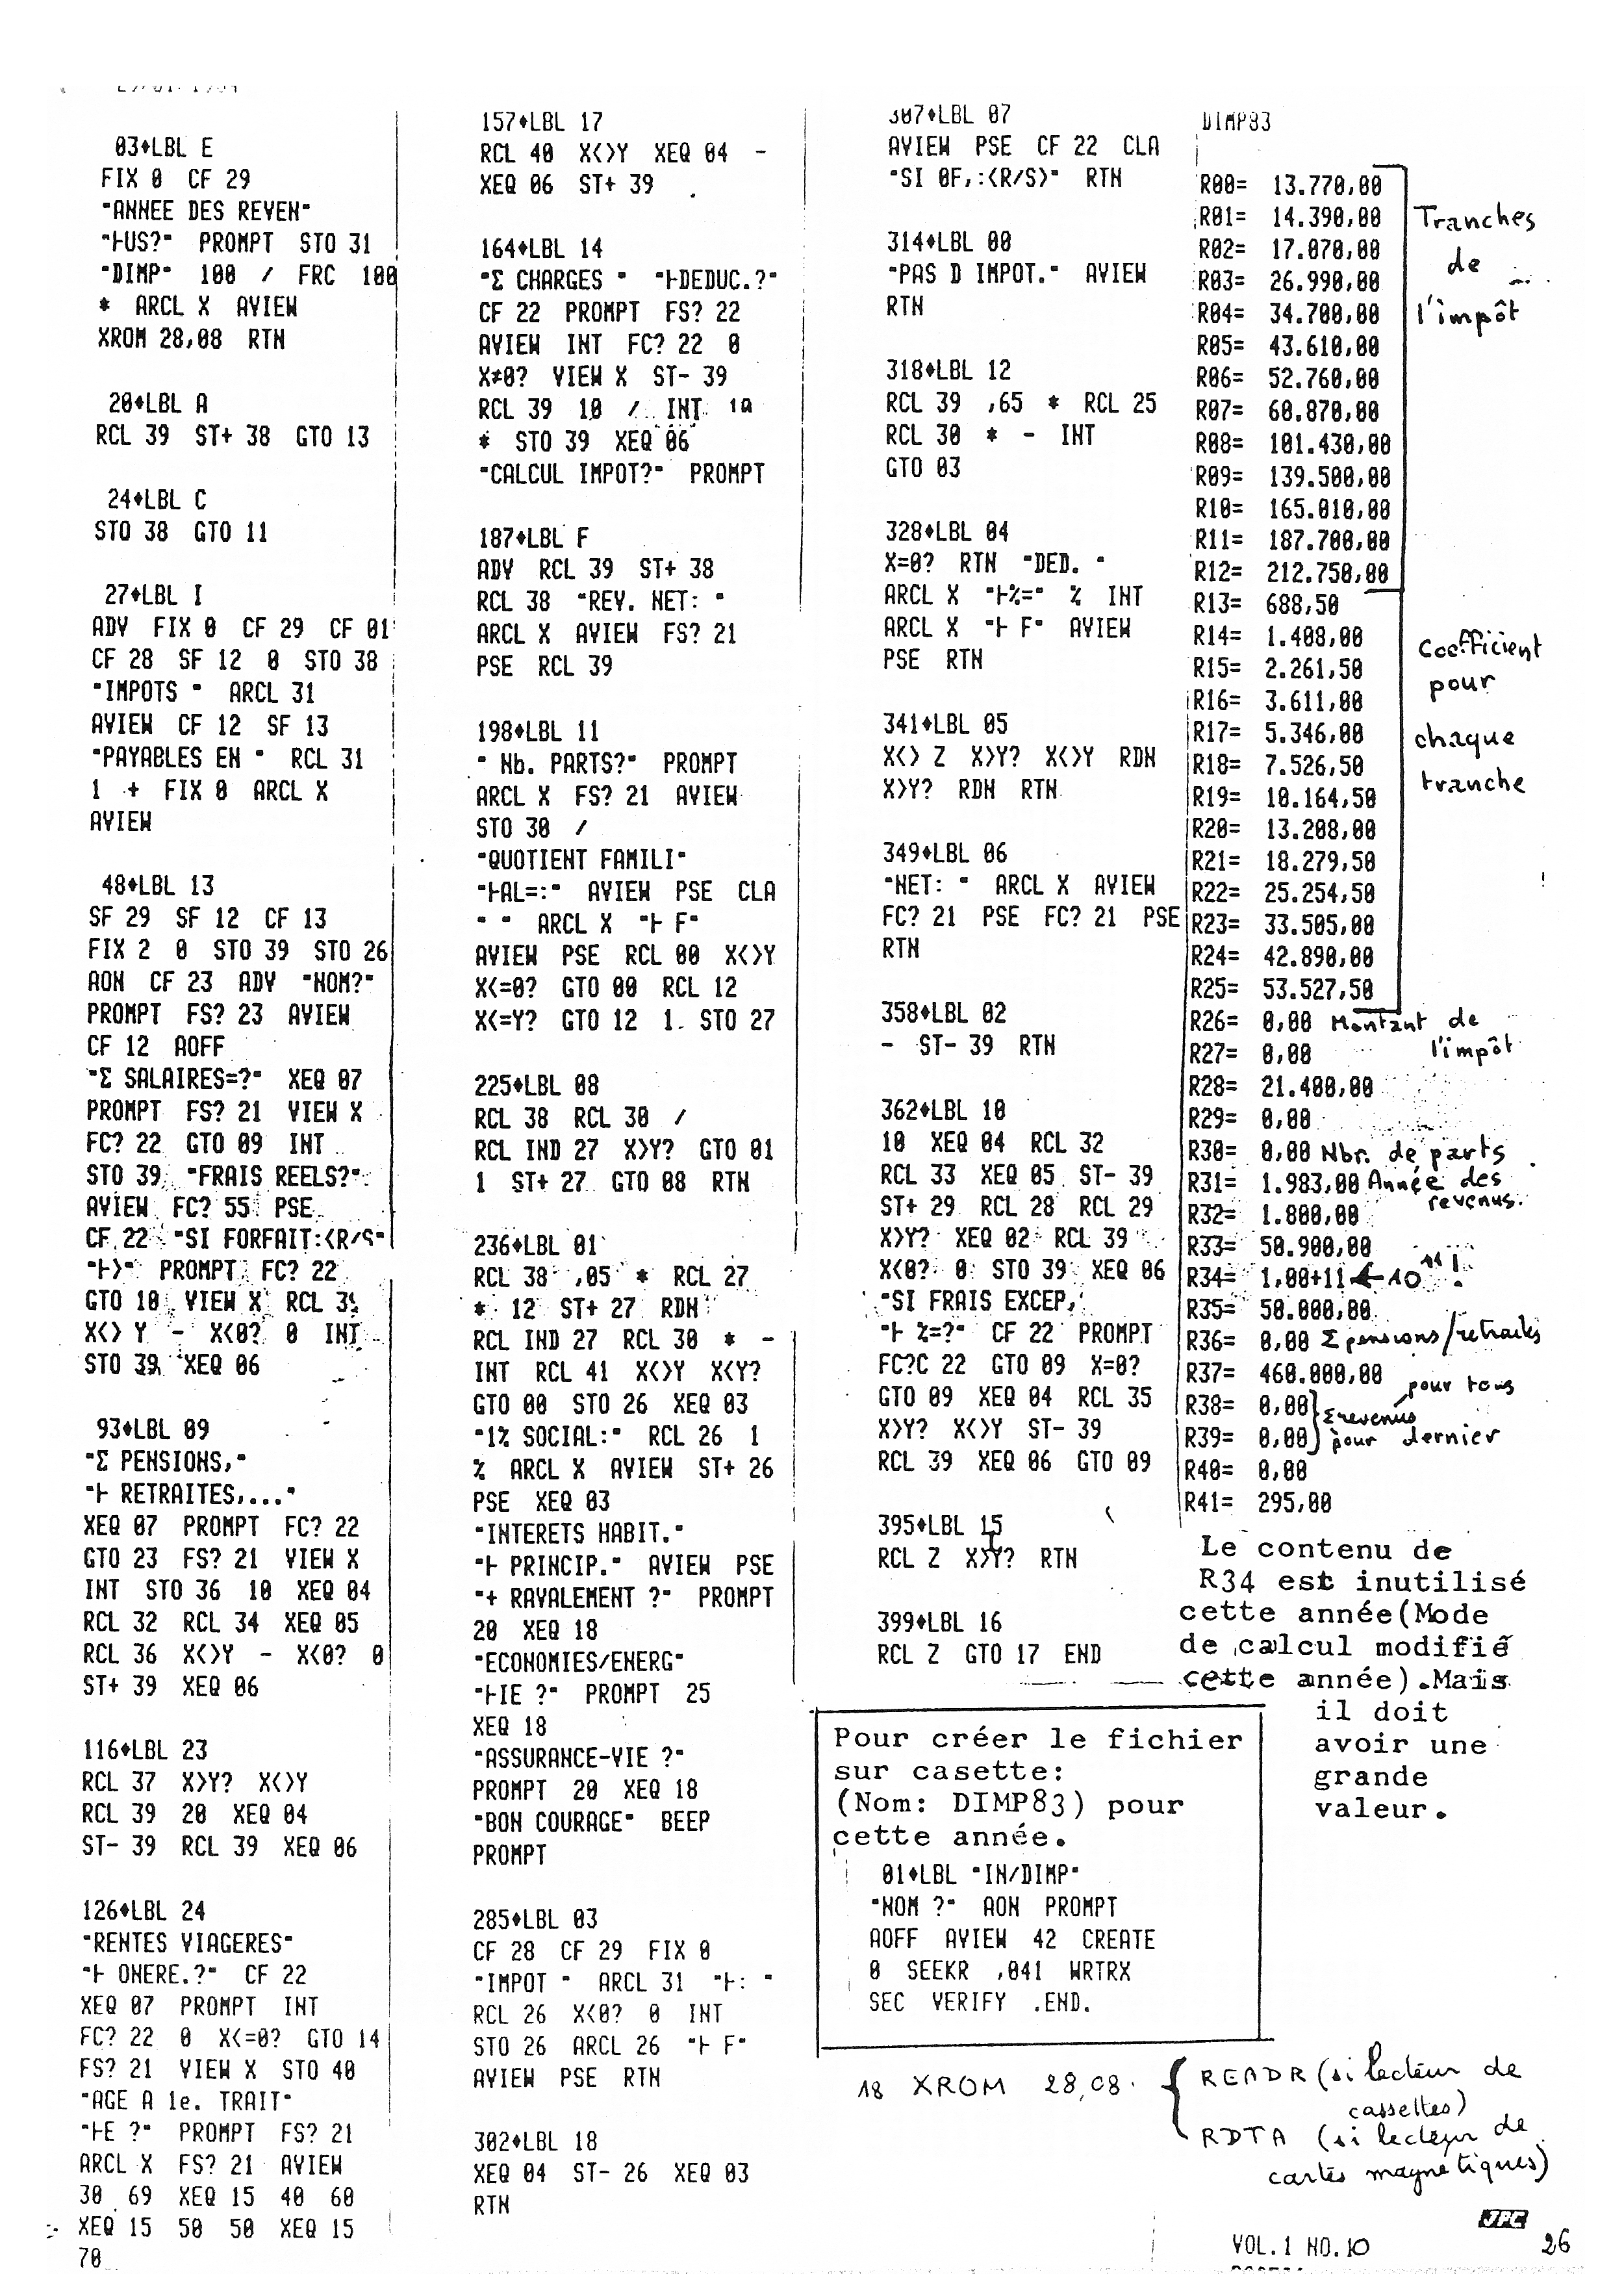 Jp-10-page-26-1000